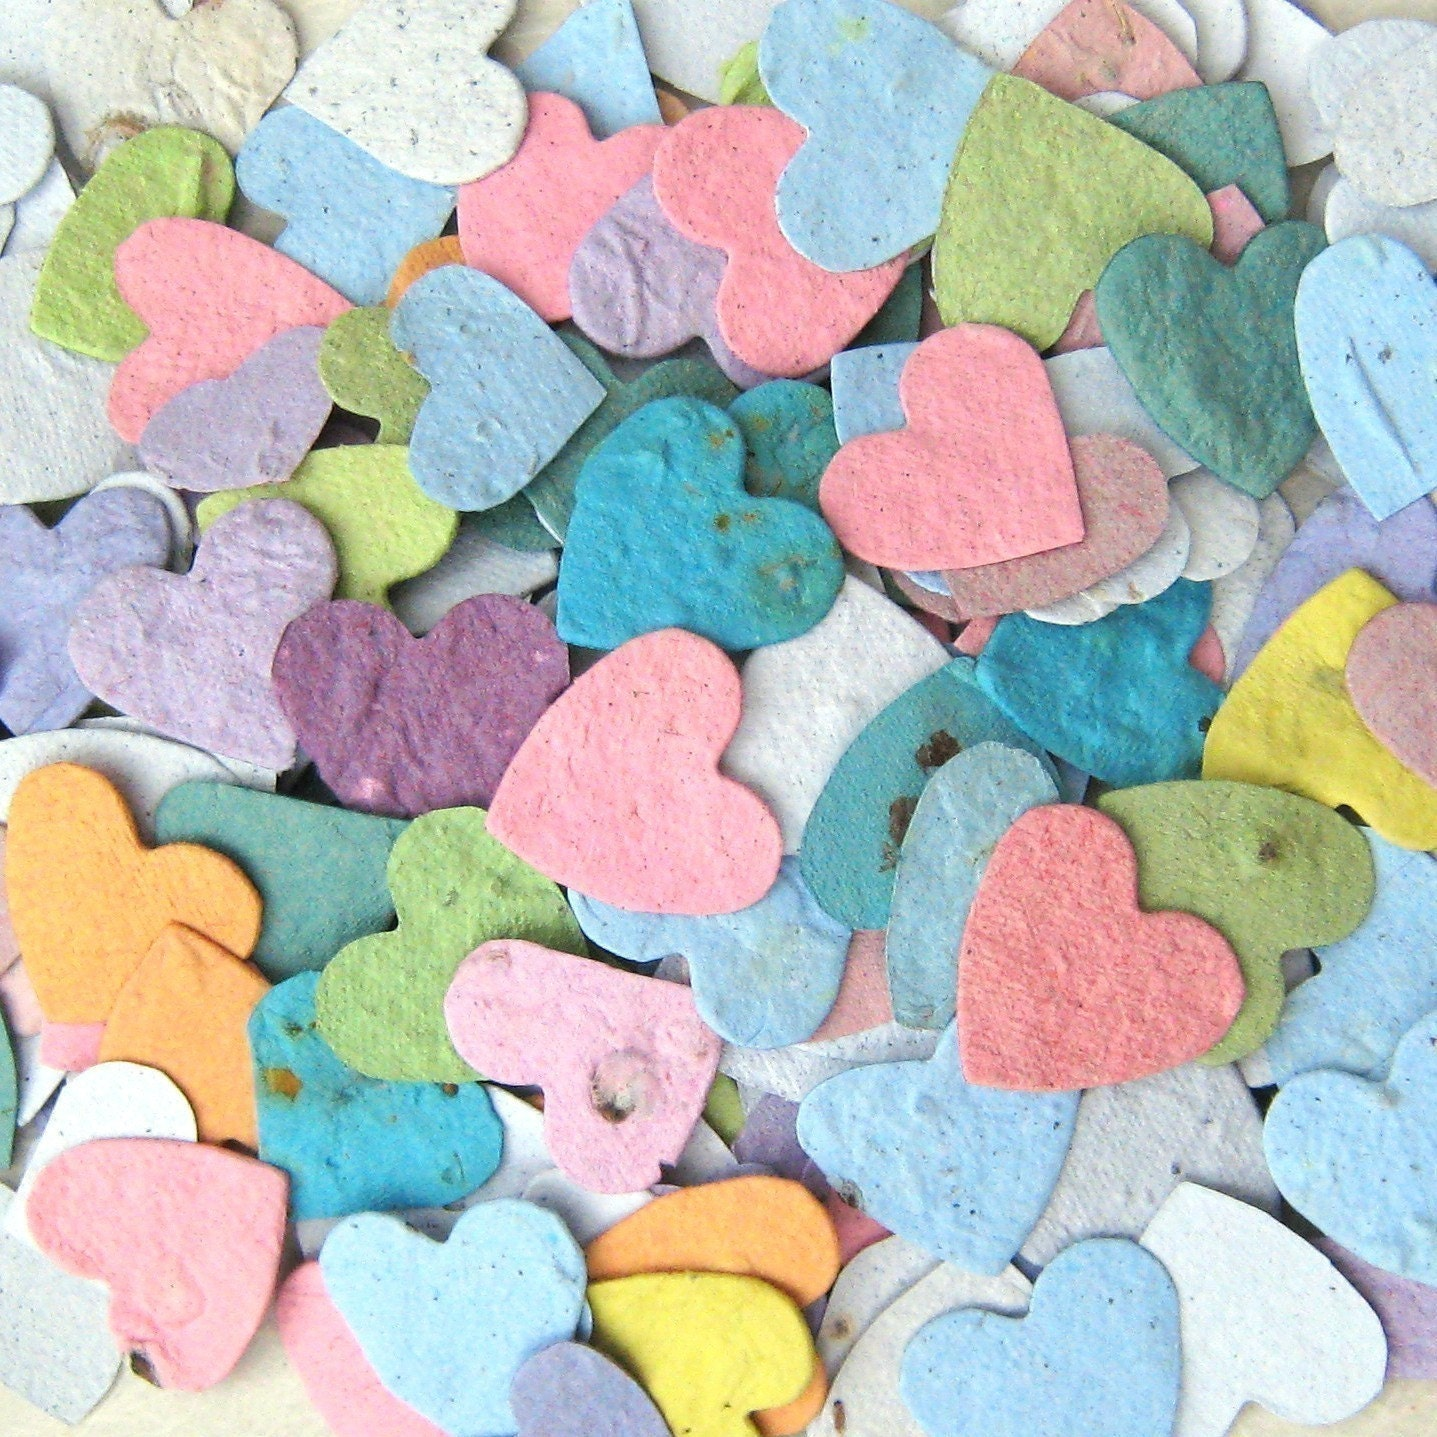 200 CUSTOM COLORS - Plantable Hearts - Handmade Paper with Flower Seeds - Assorted and Custom Color Options